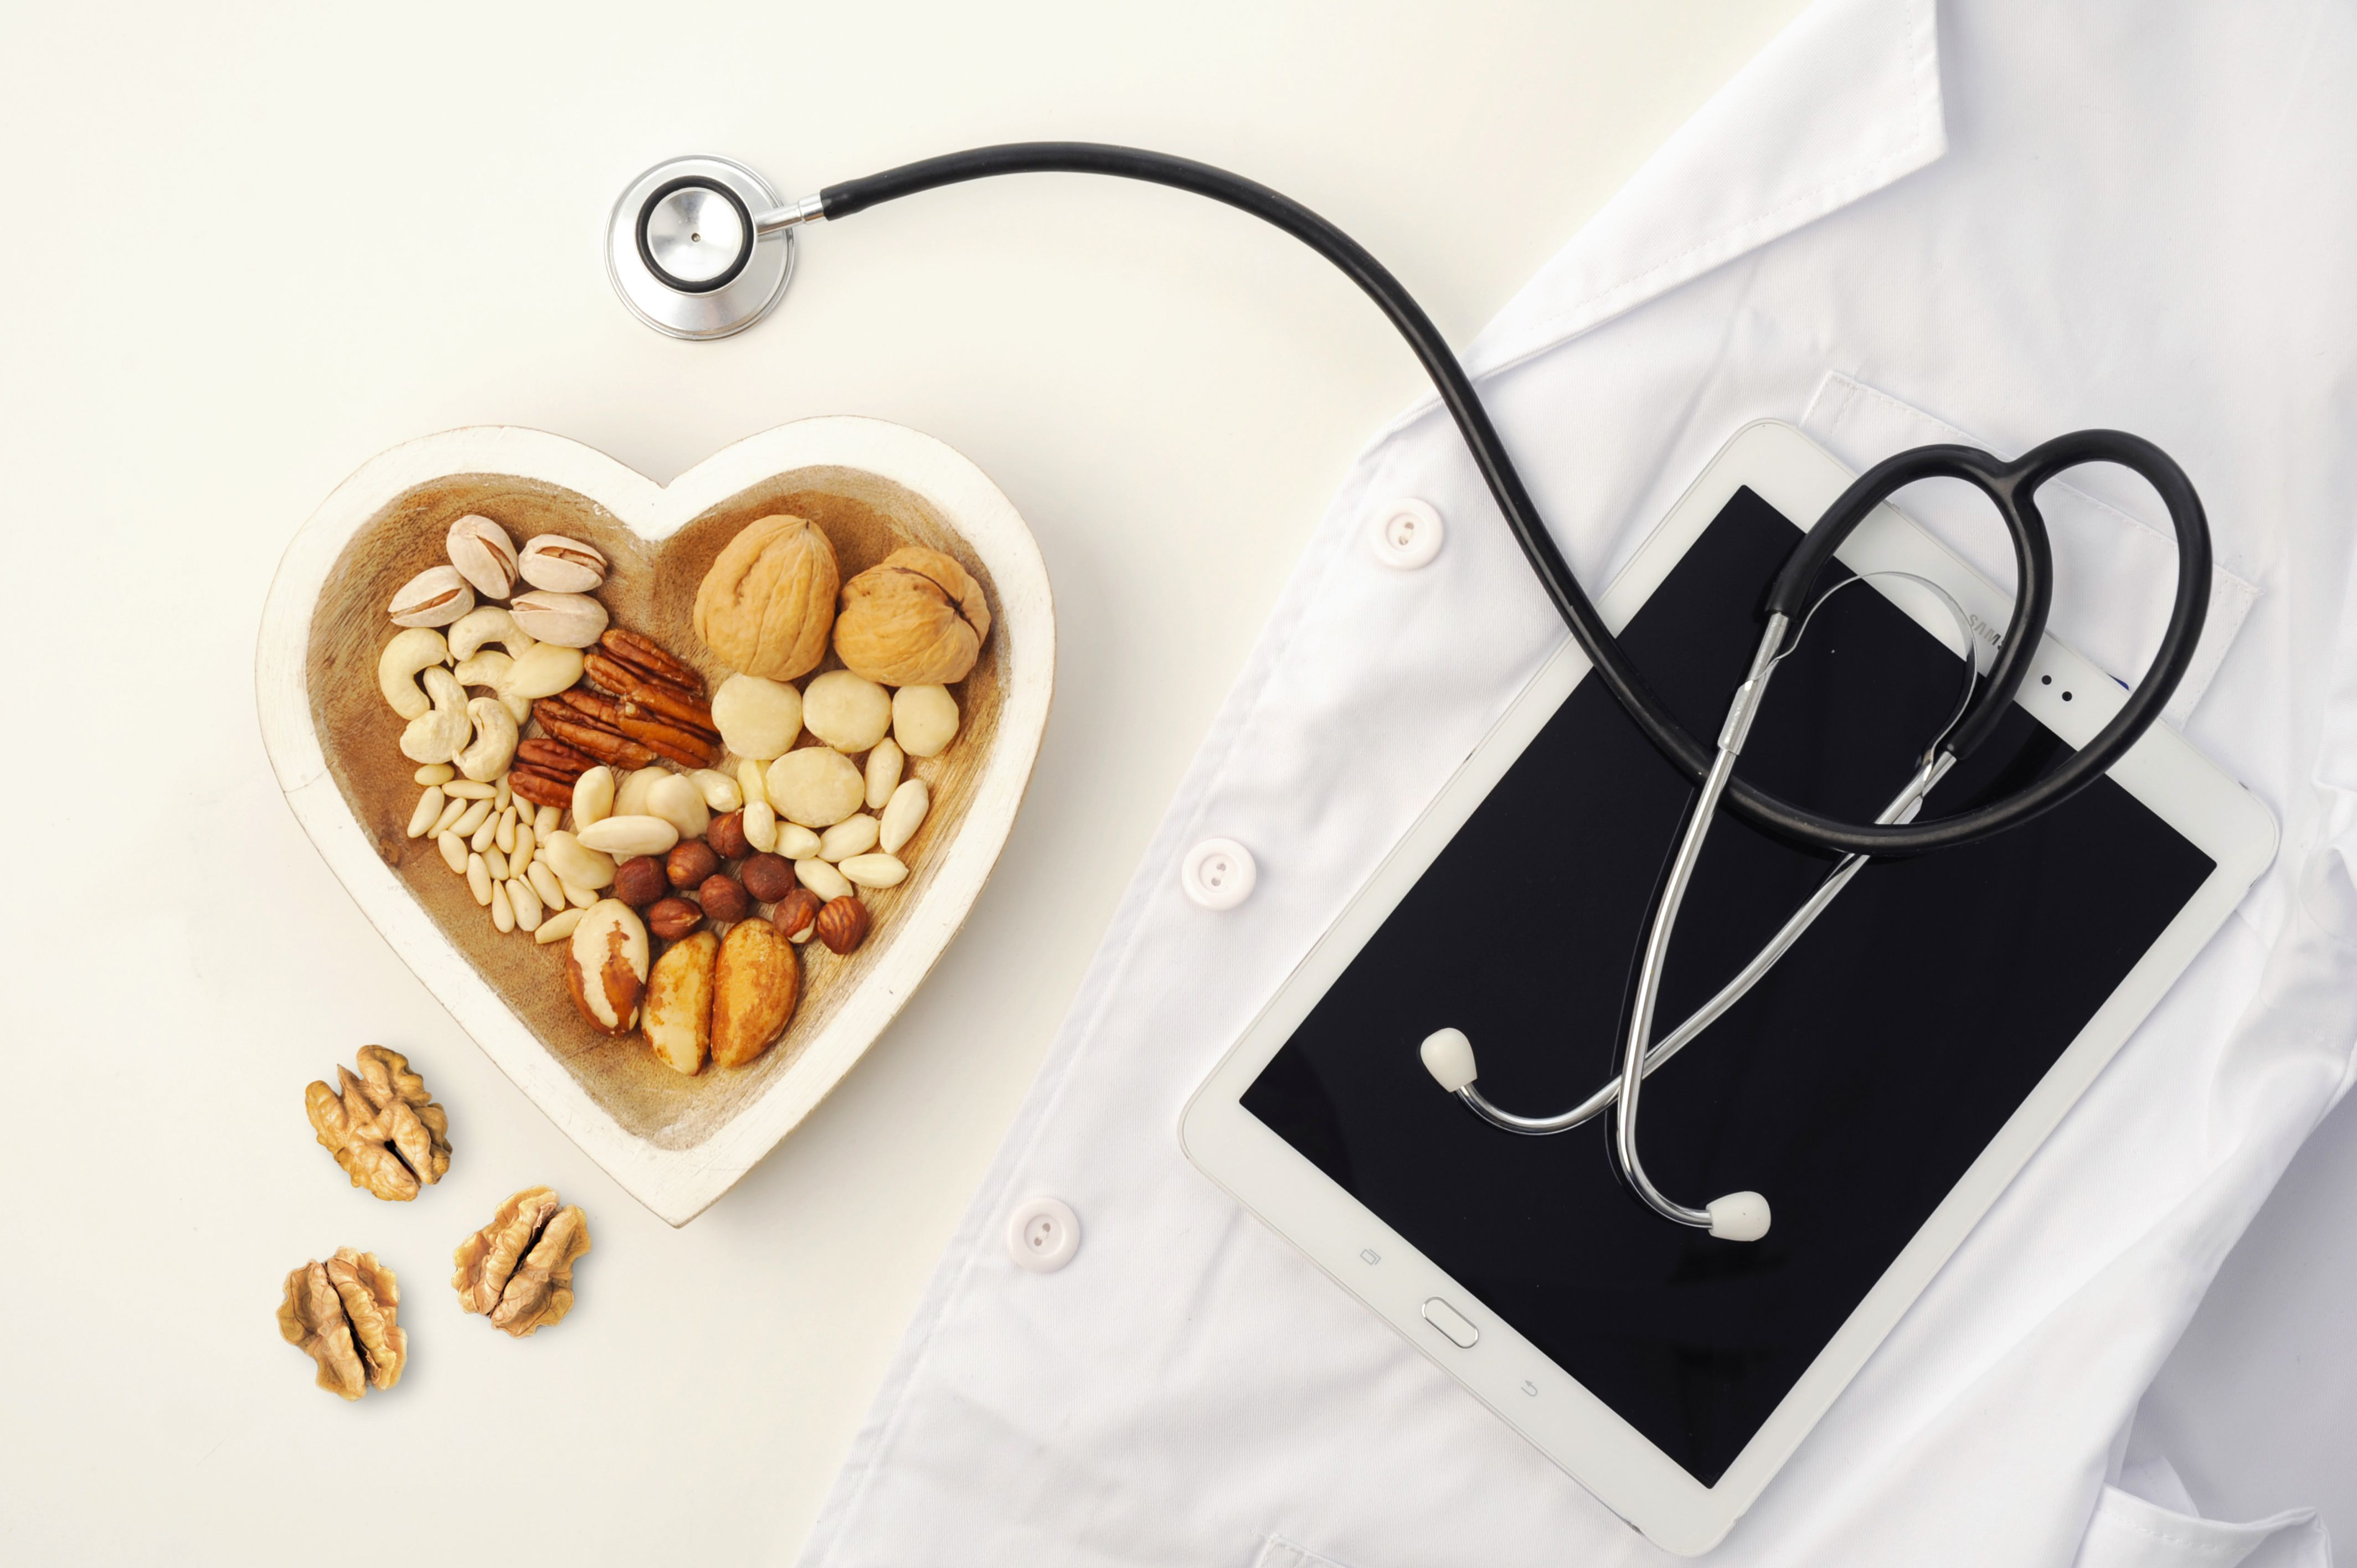 Nut Consumption May Have a Protective Effect on Cardiometabolic Disease